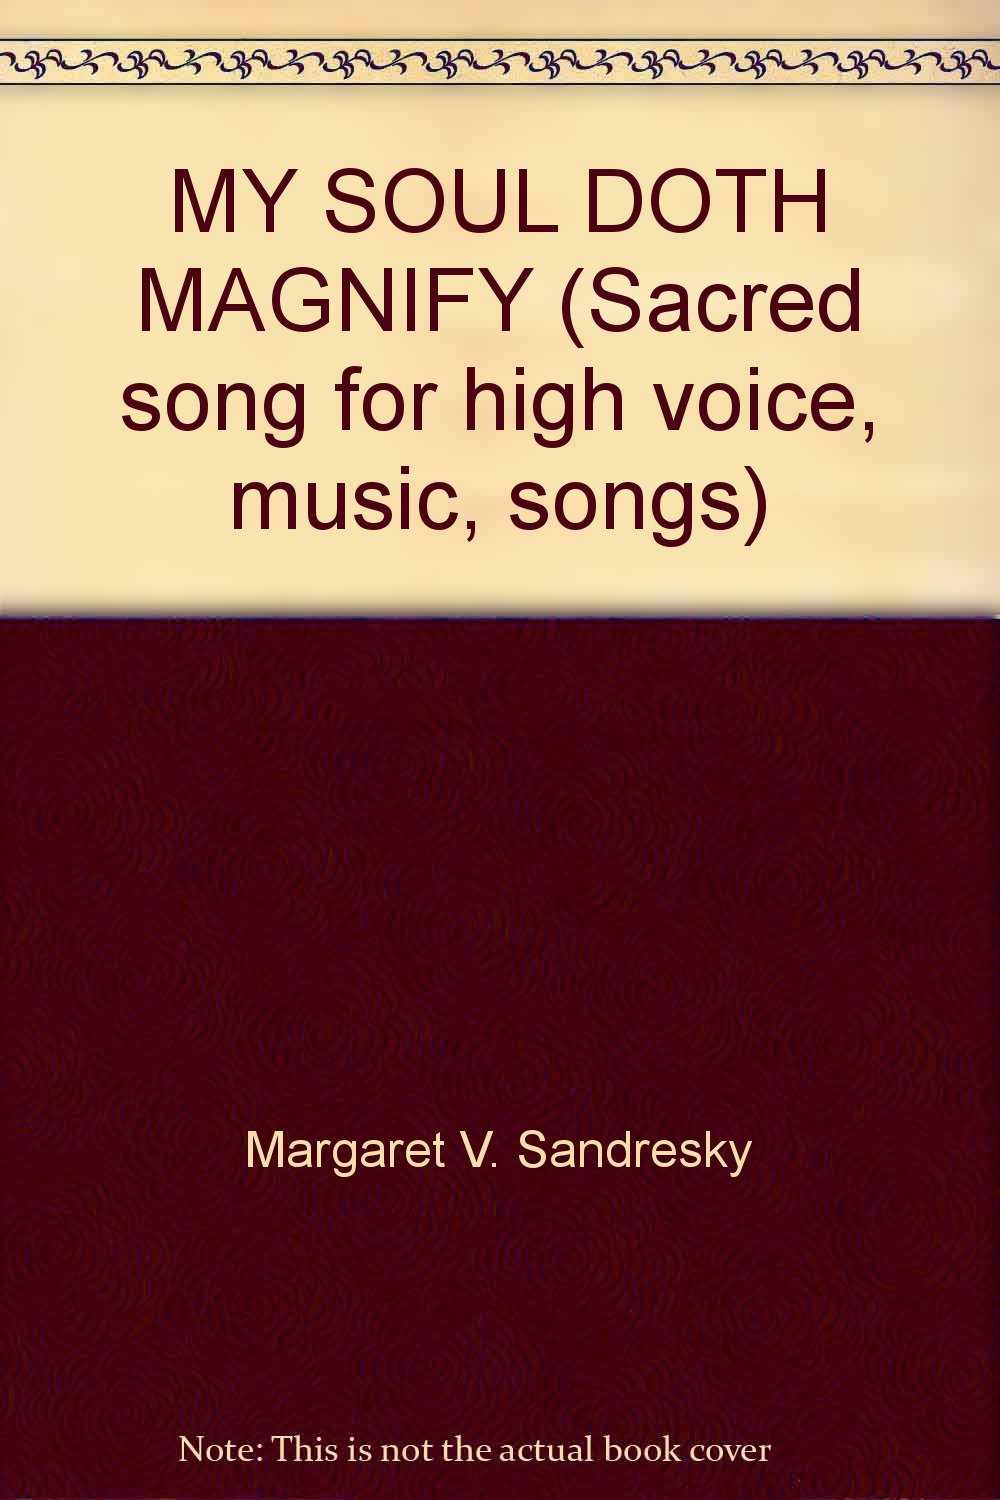 my-soul-doth-magnify-sacred-song-for-high-voice-music-songs